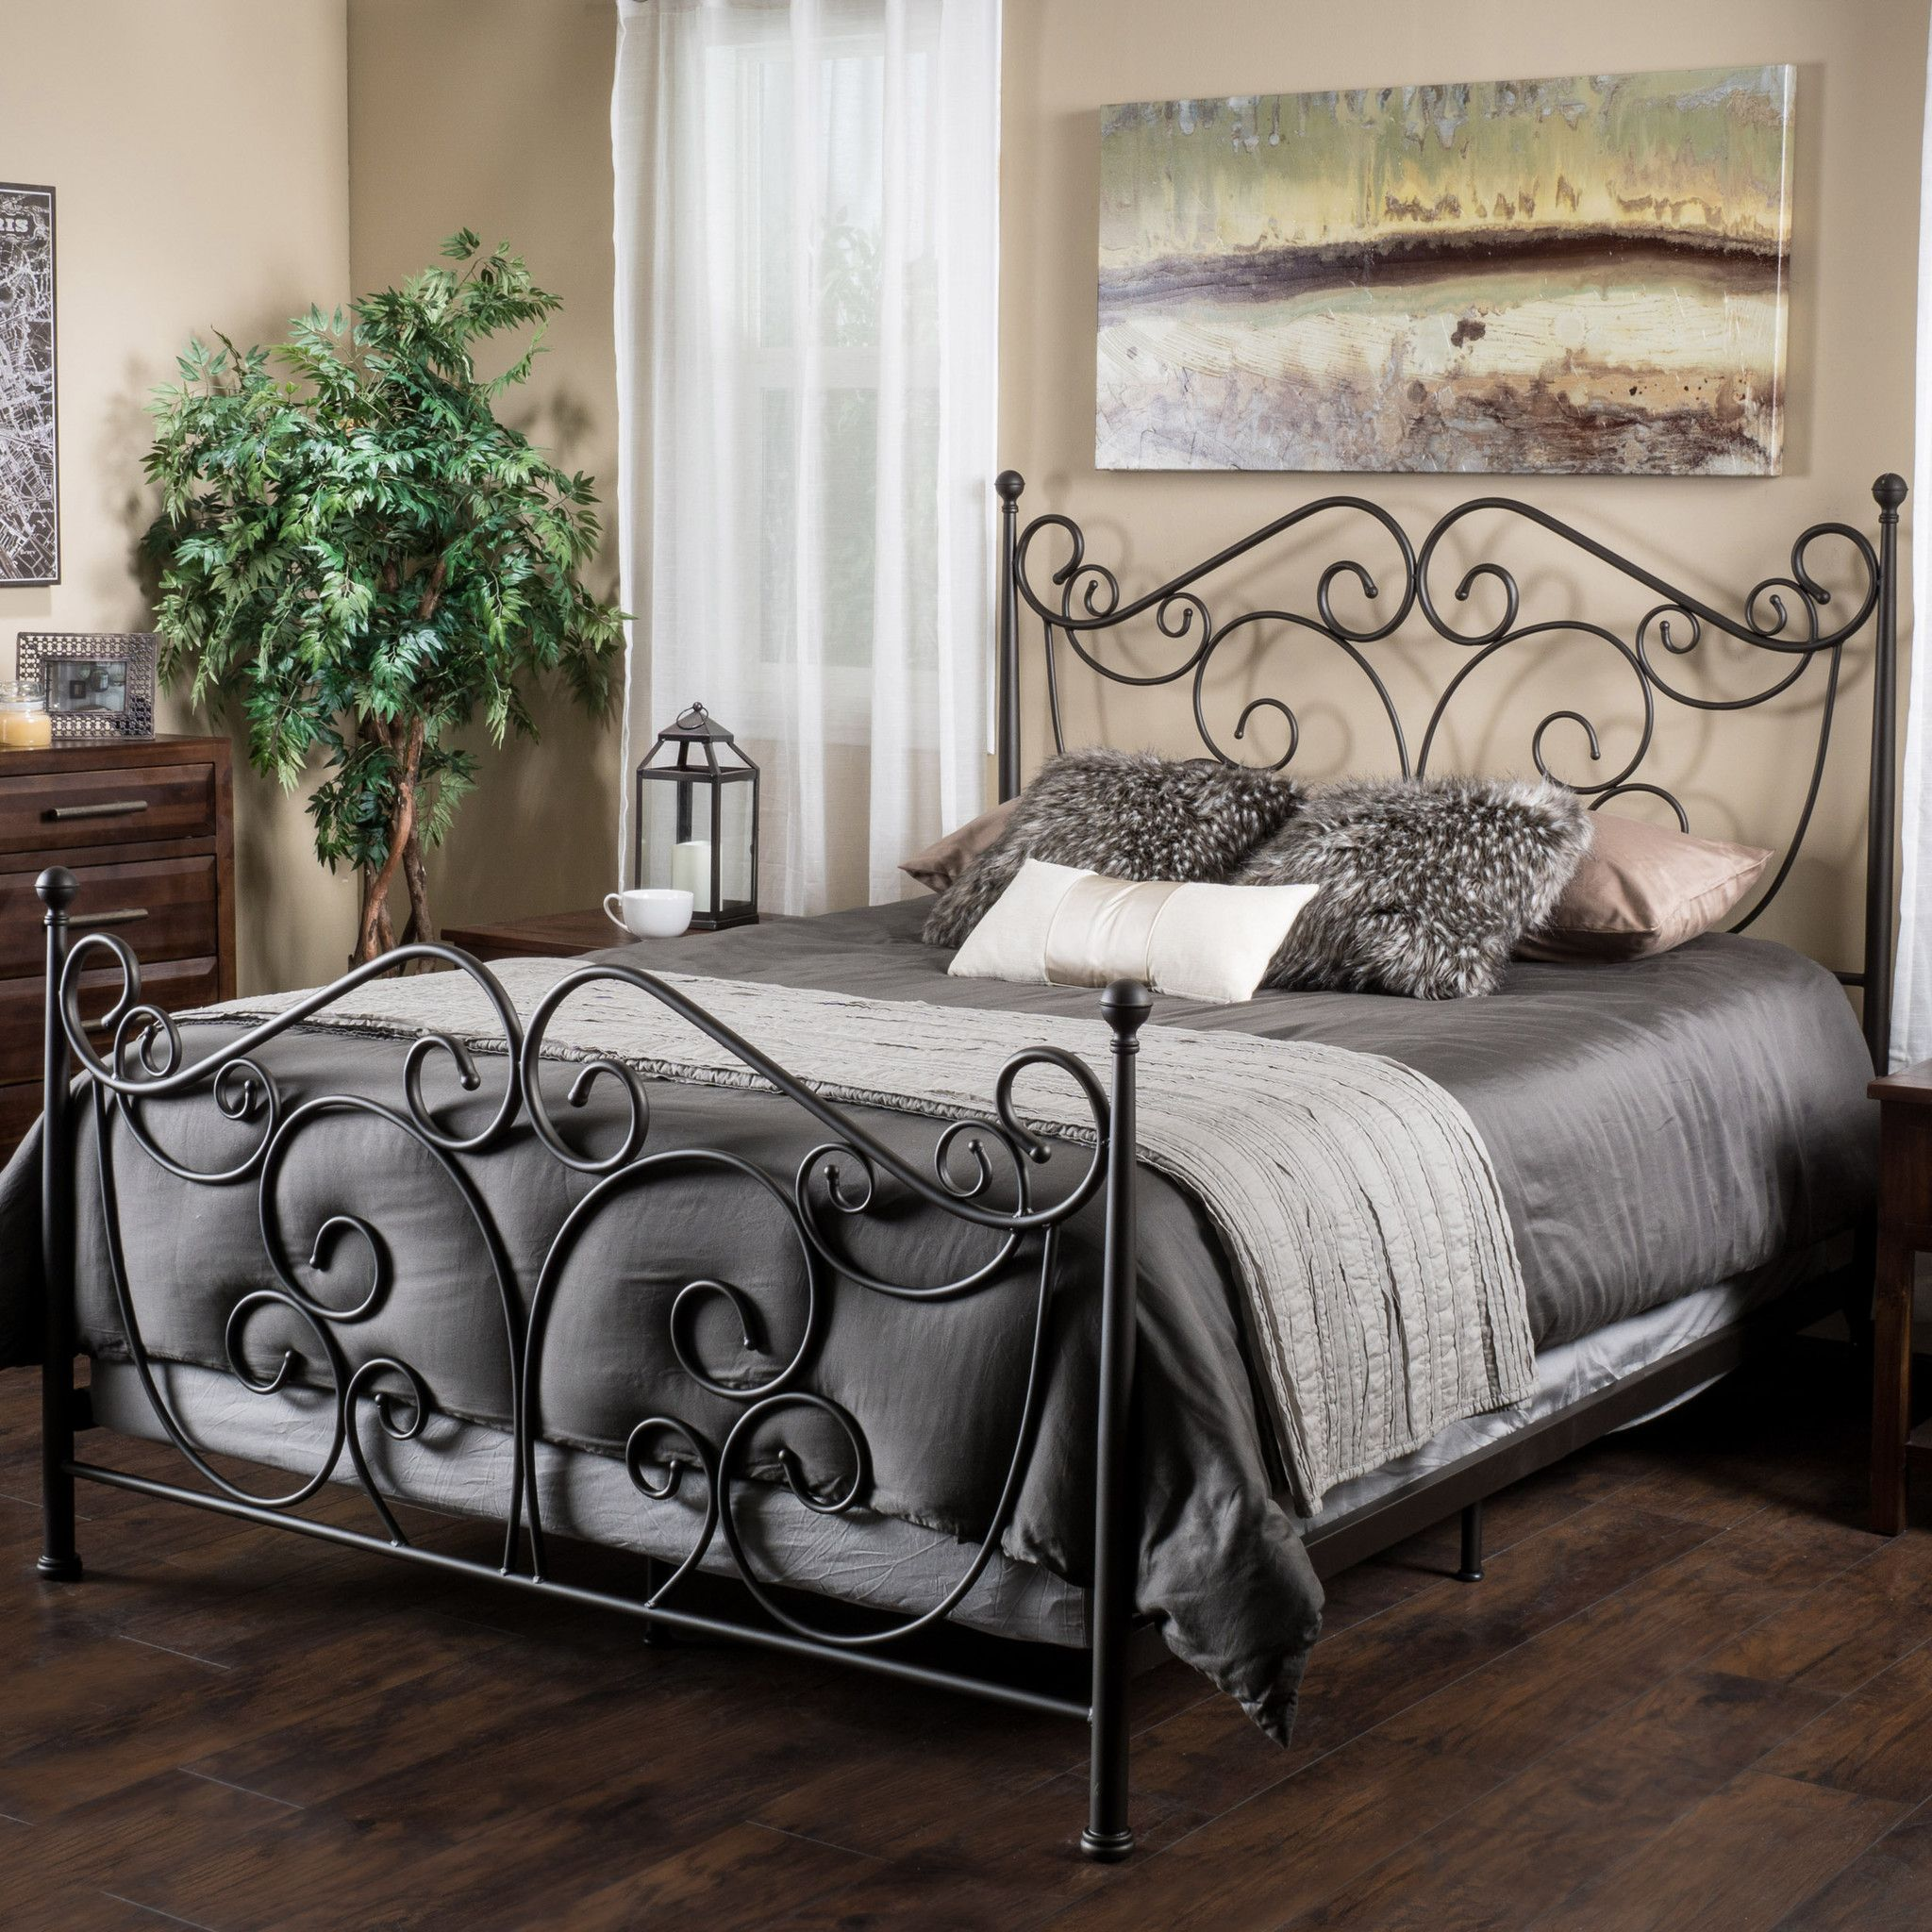 Haven King Size Scroll Design Iron Bed in Dark Bronze | Camas ...